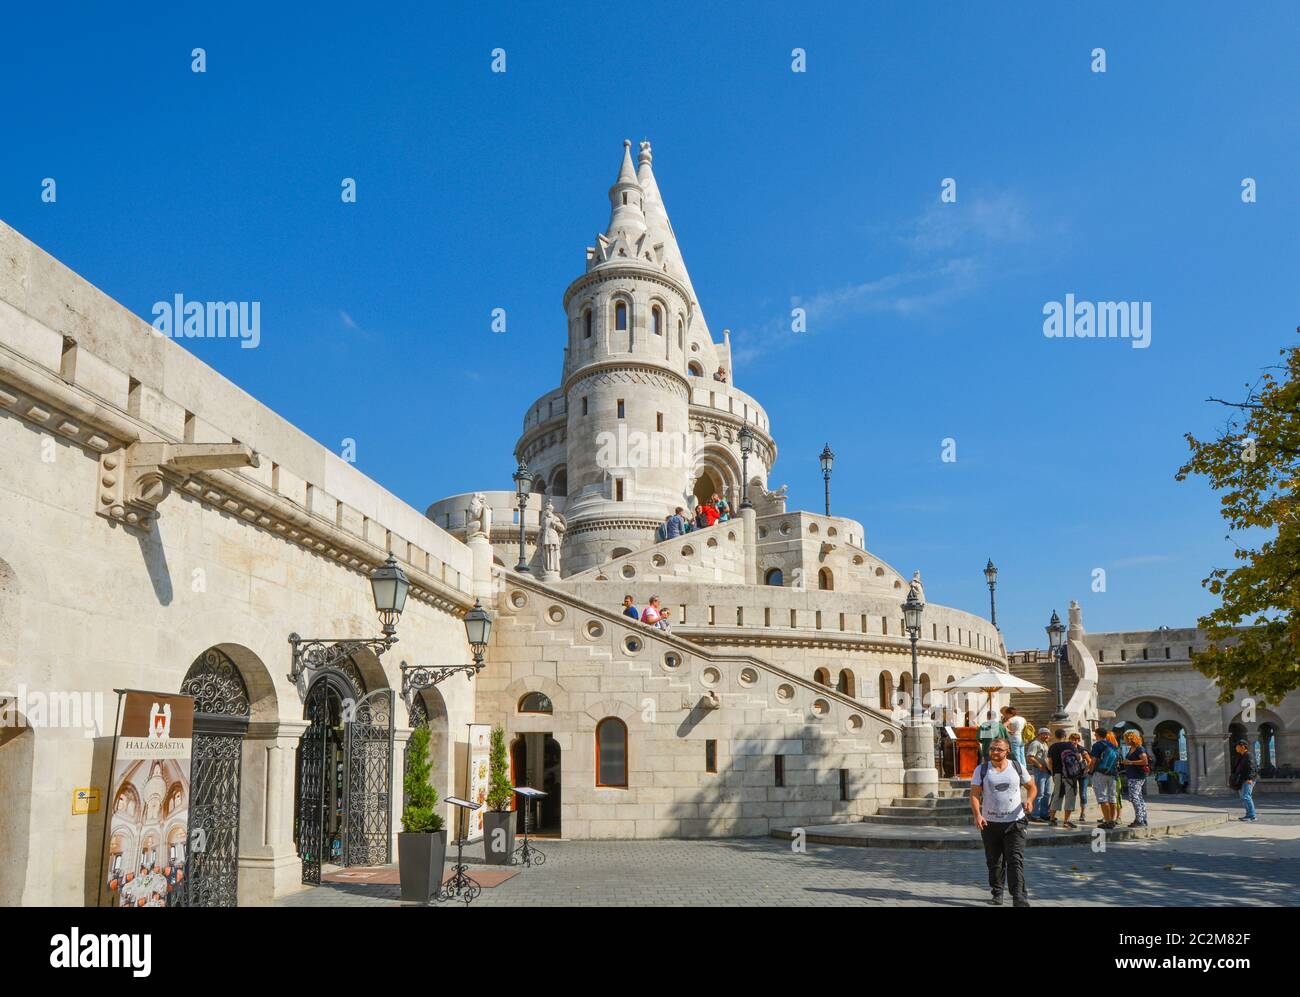 Tourists enjoy a sunny day at Fisherman's Bastion, part of the Buda Castle Complex in Budapest Hungary. Stock Photo